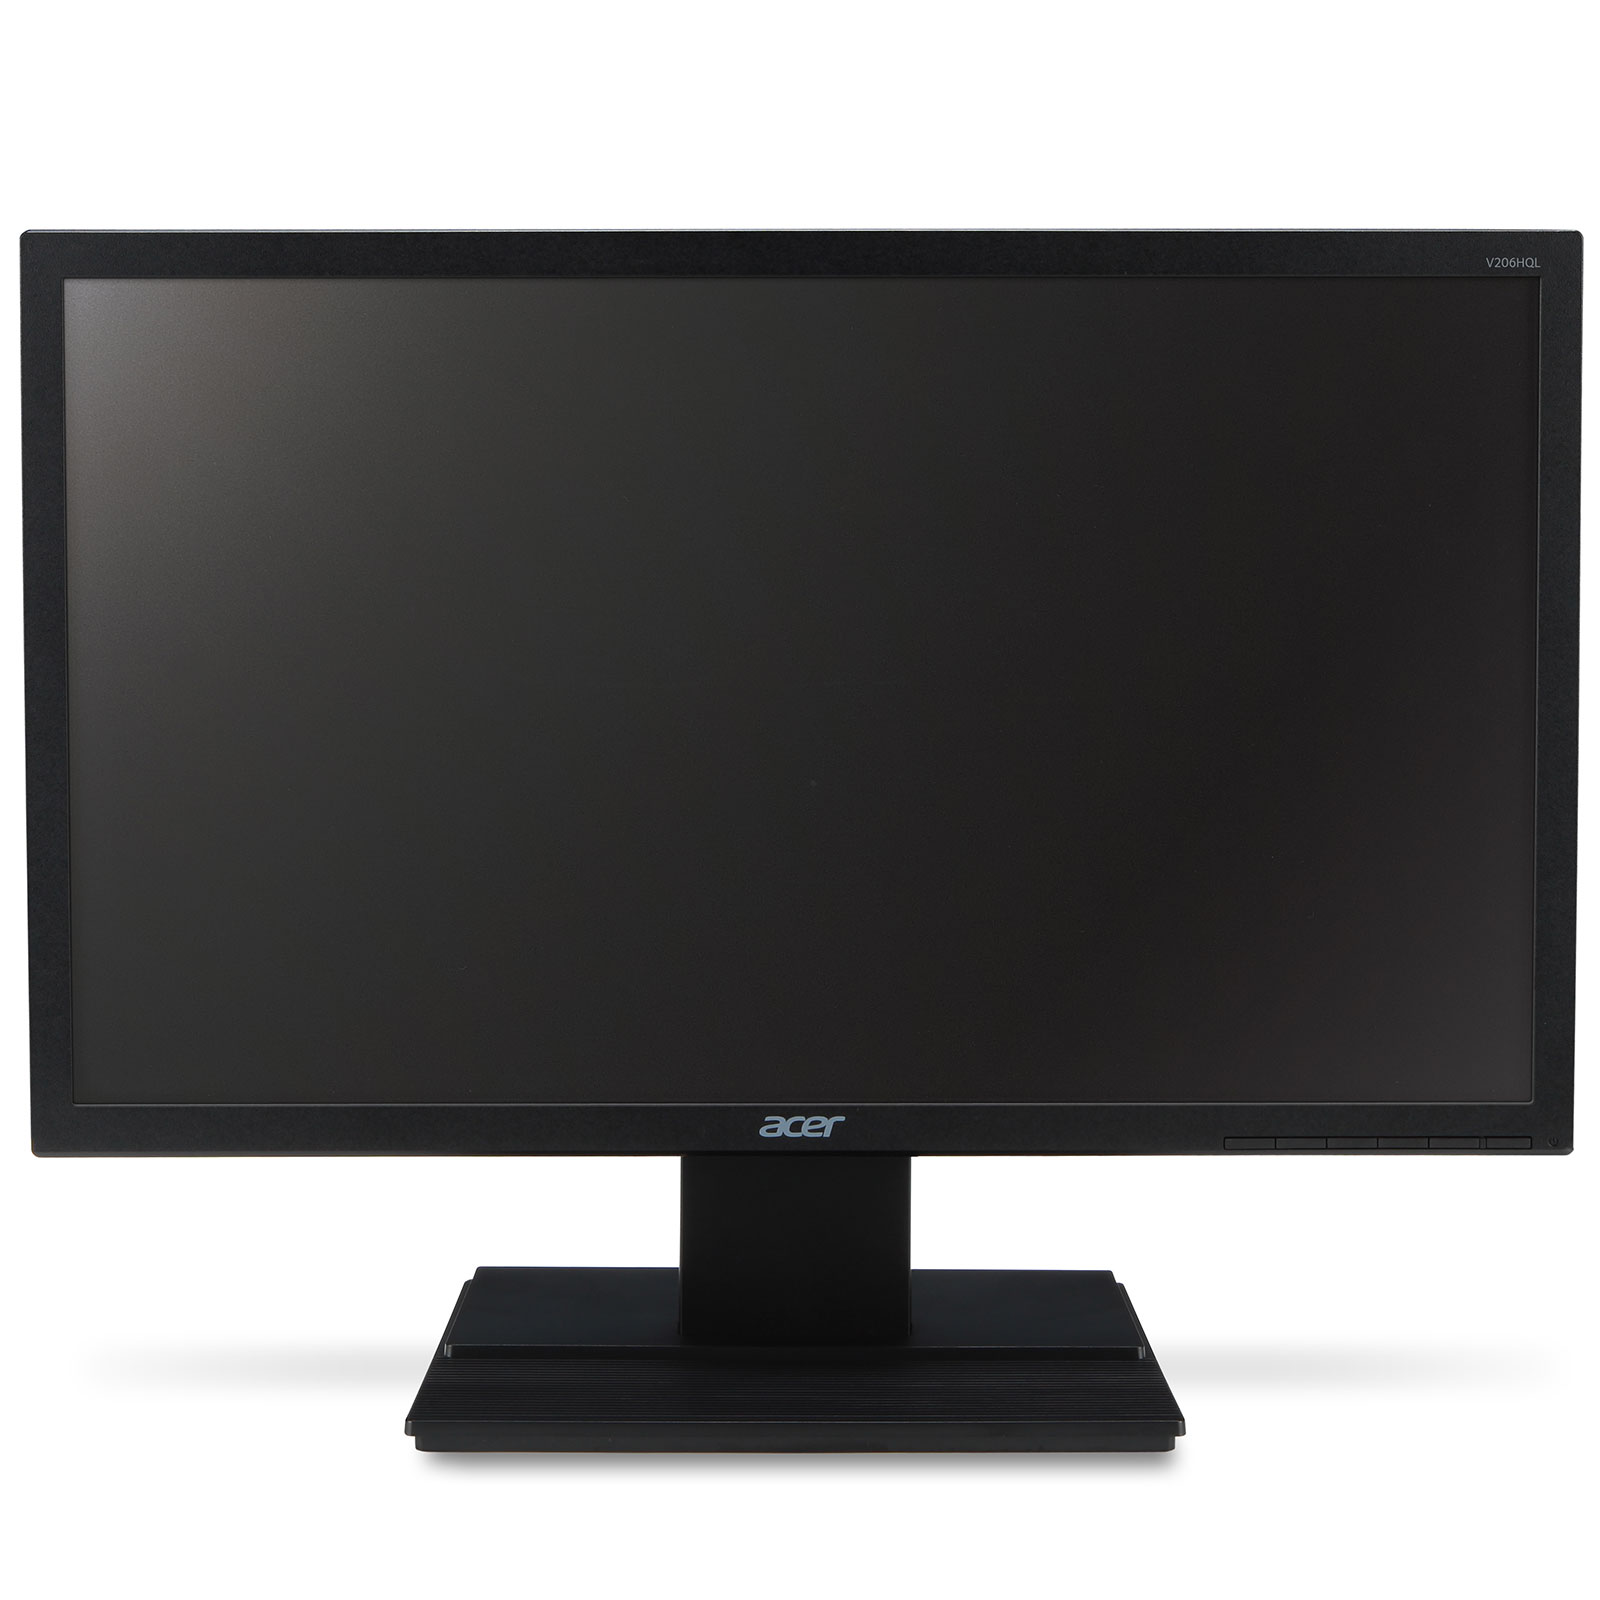 acer 19 5 led v206hqlbb um iv6ee b01 achat vente ecran pc sur. Black Bedroom Furniture Sets. Home Design Ideas